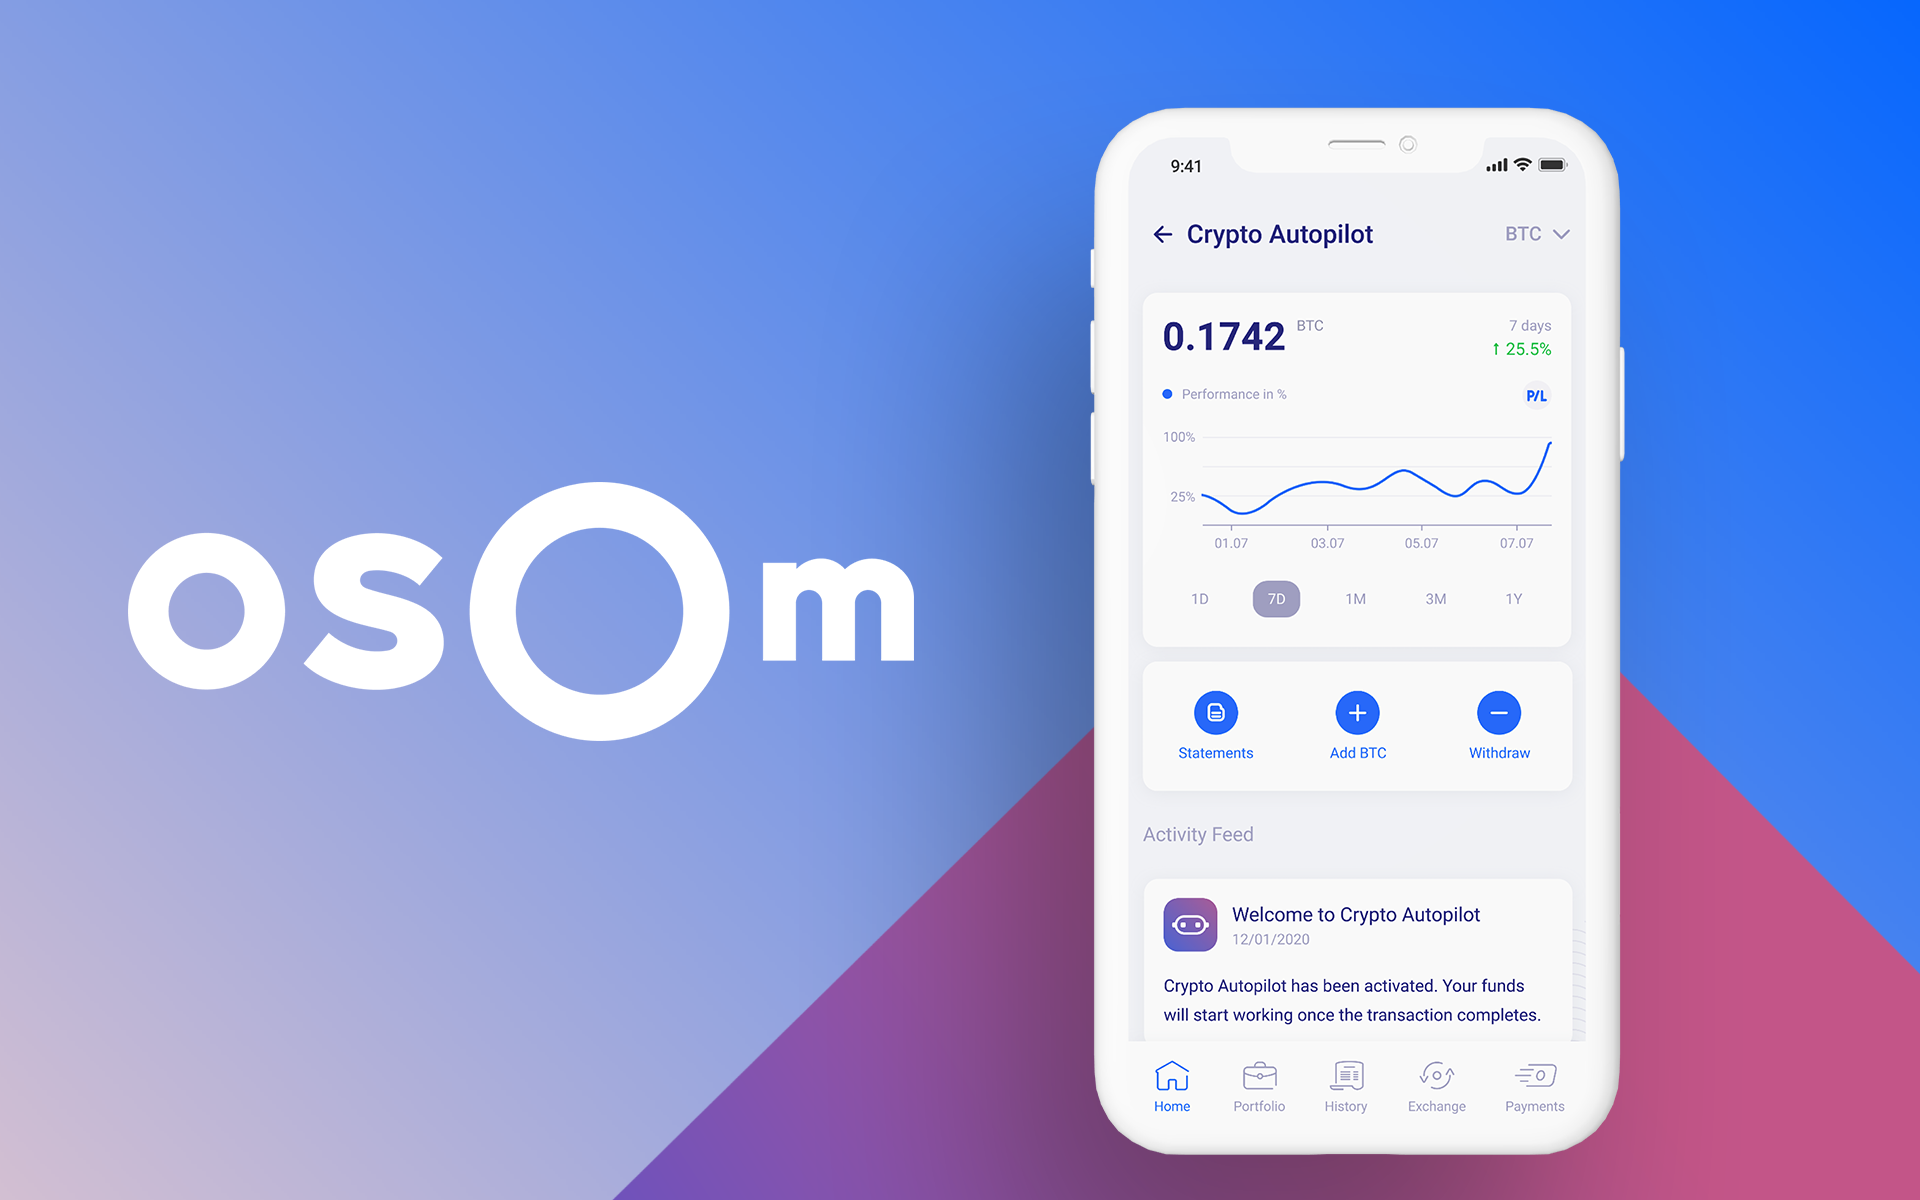 Take The Guesswork Out Of Bitcoin With AI-Powered Crypto Autopilot By OSOM